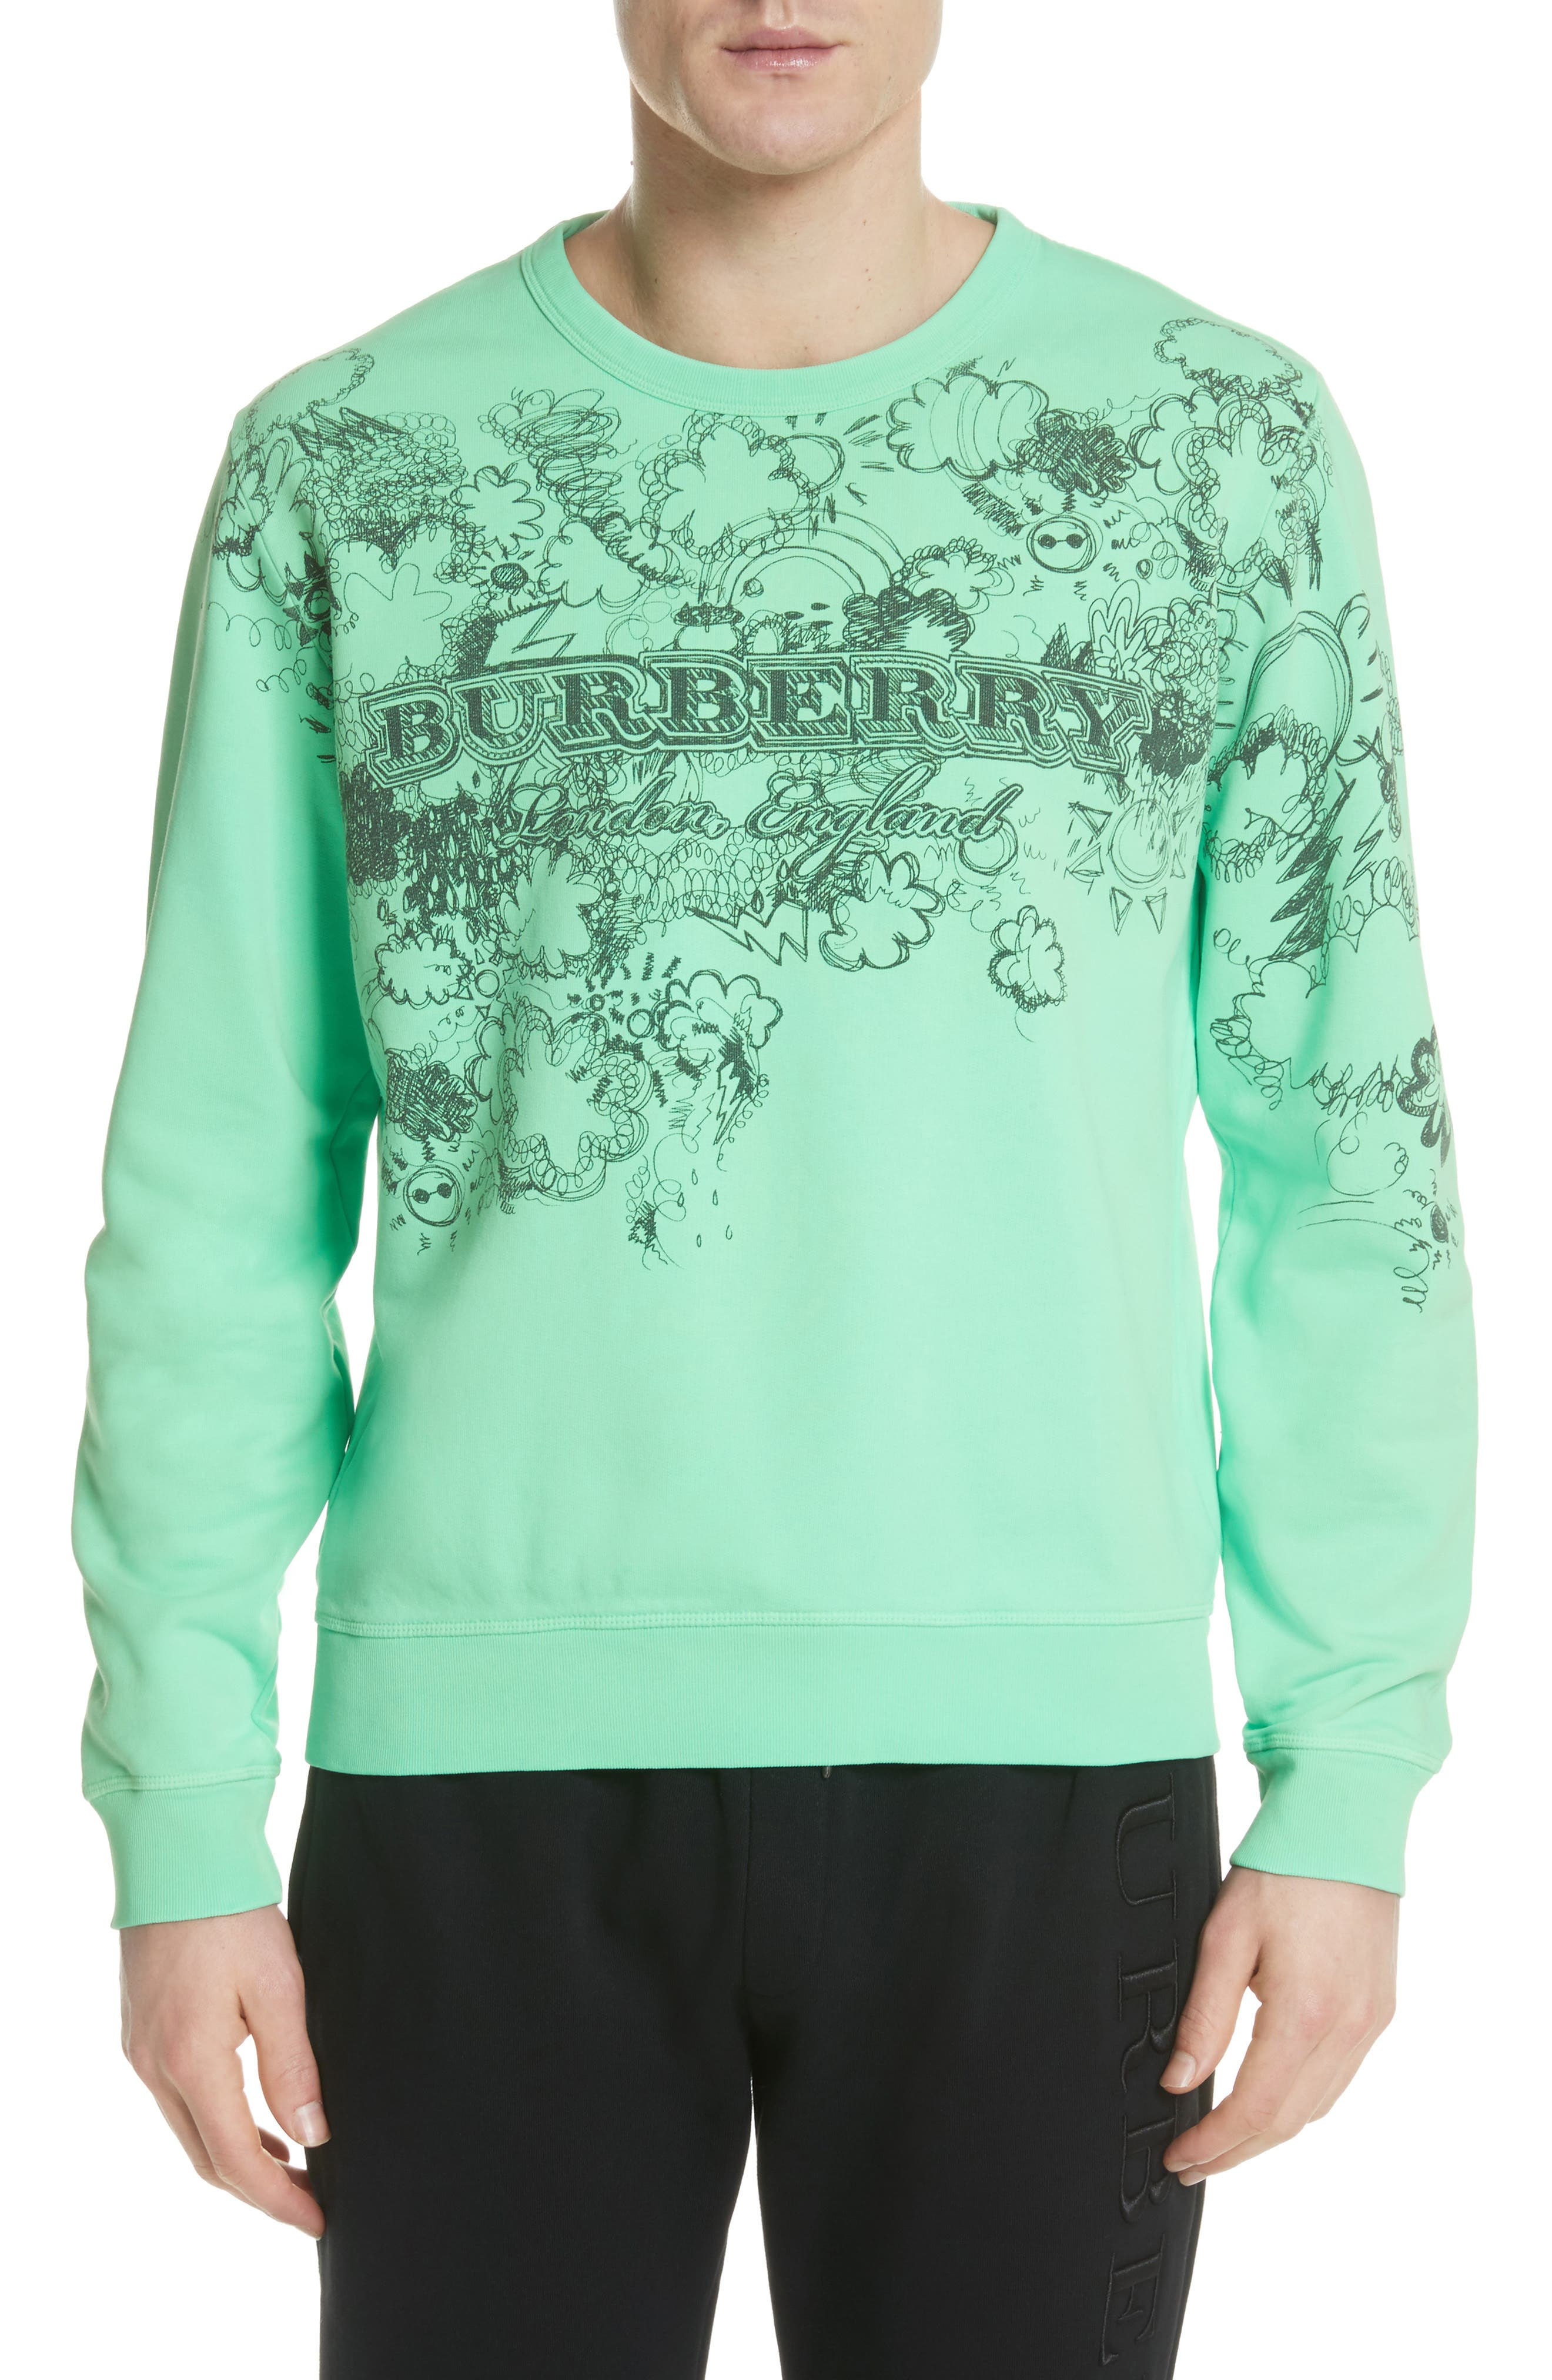 Alternate Image 1 Selected - Burberry Madon Graphic Sweatshirt